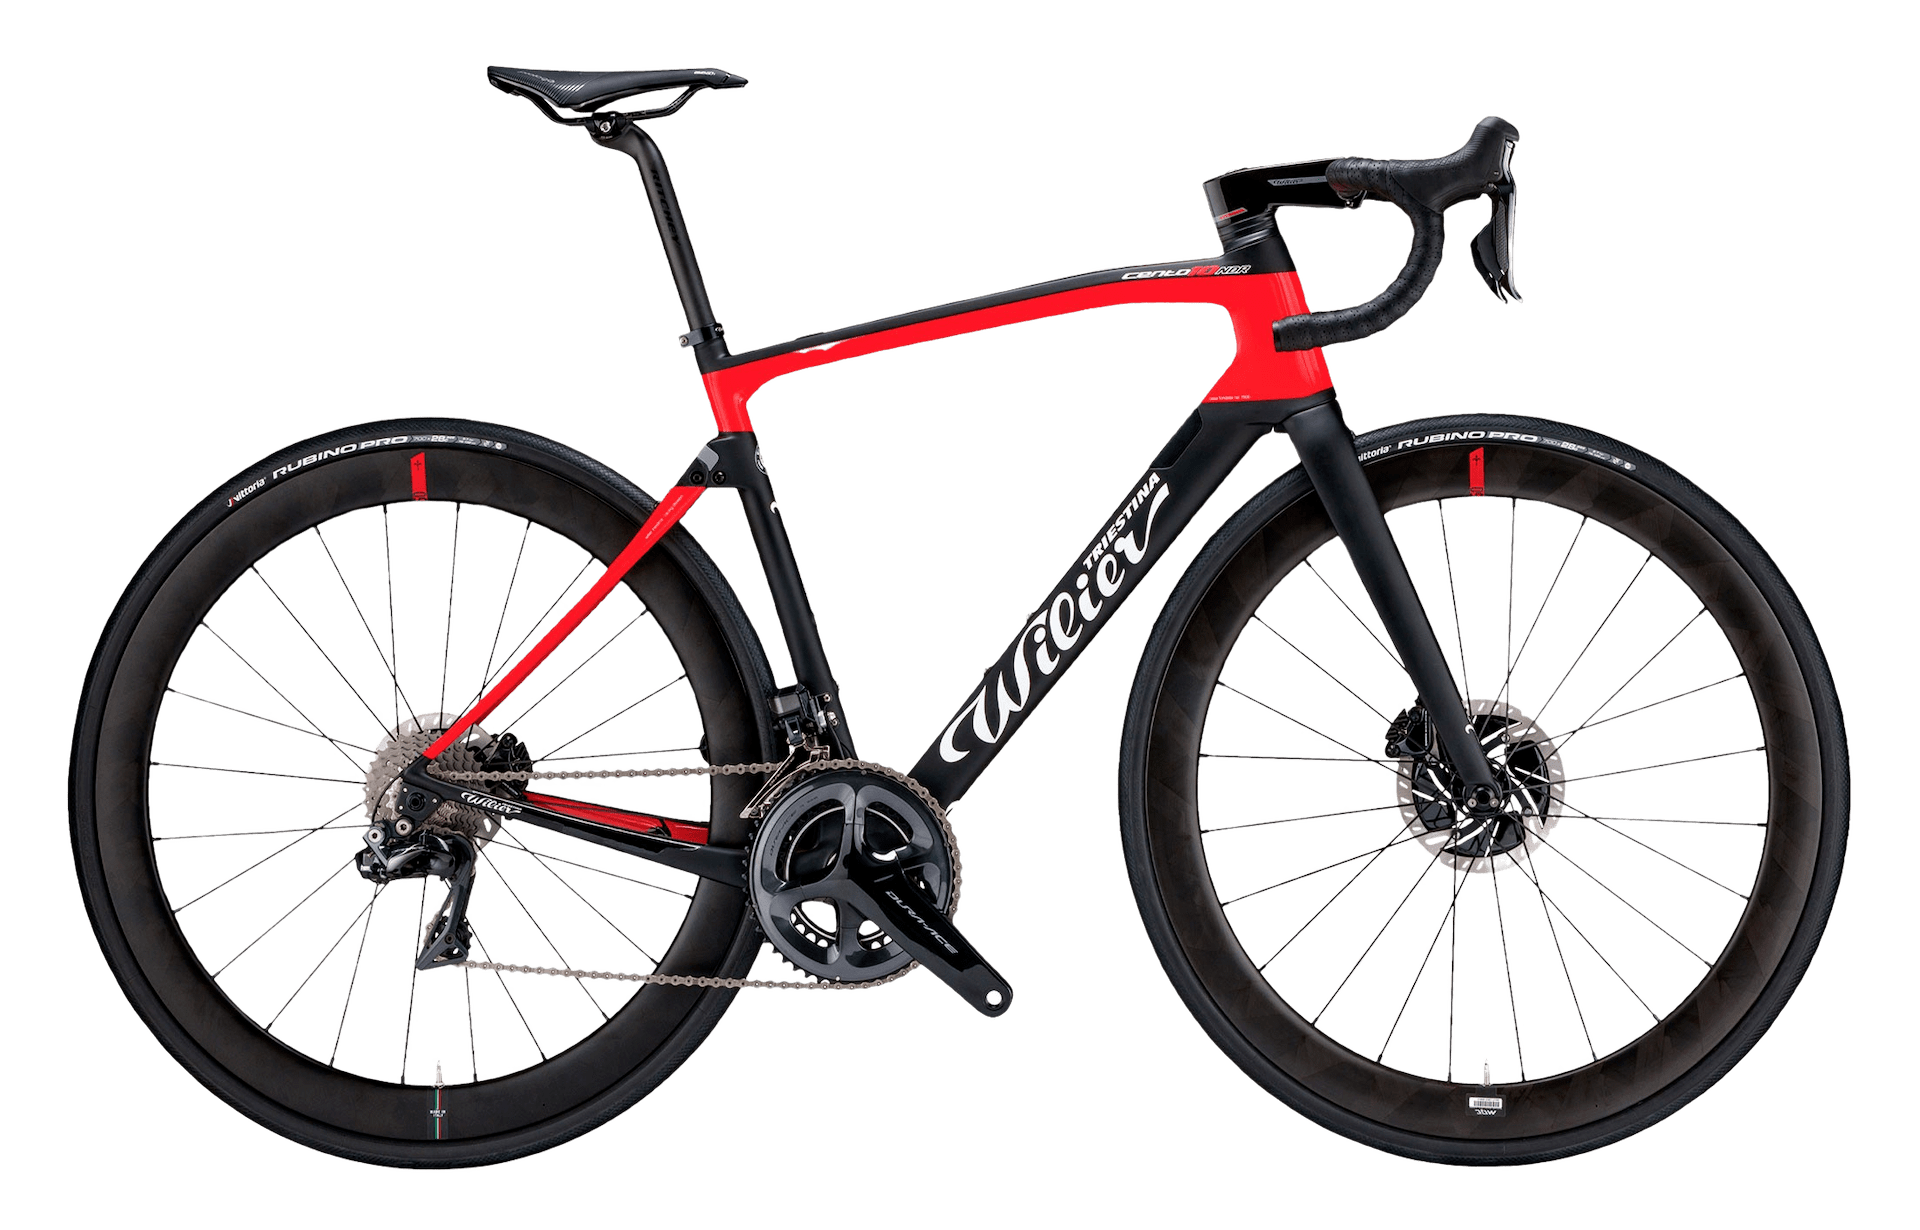 wilier cento 10 ndr racefiets